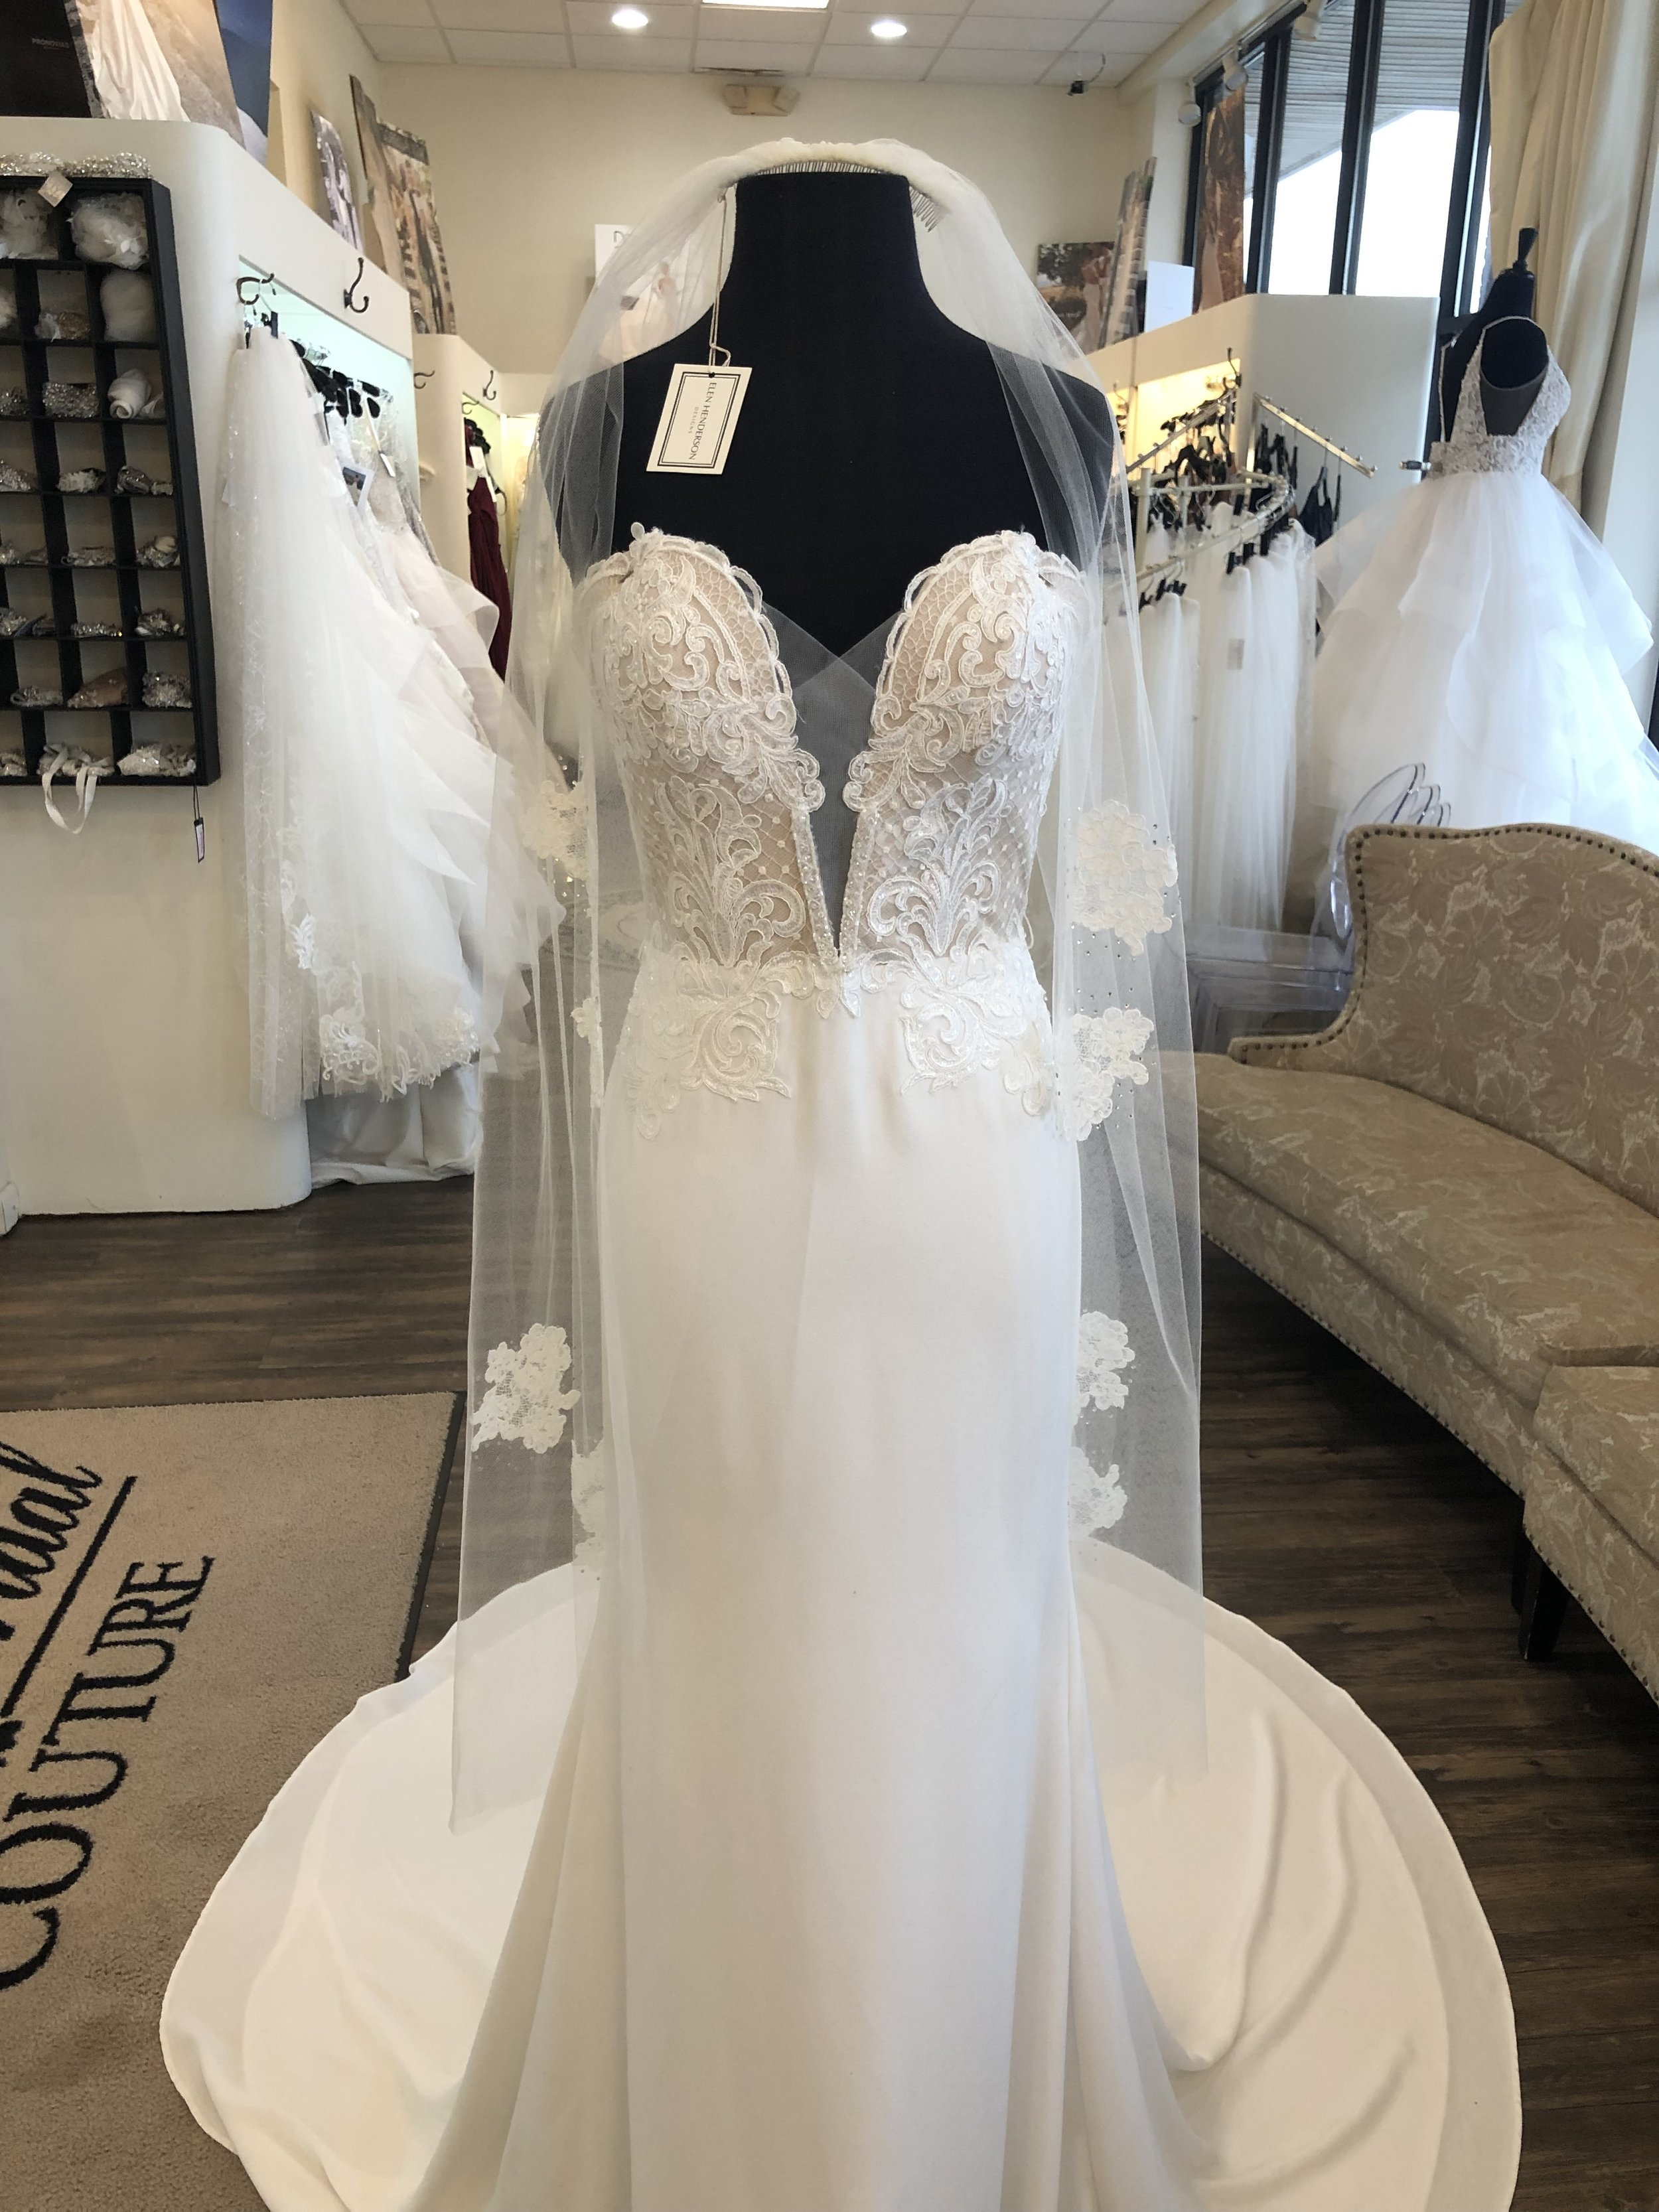 Malis Henderson KNEE length veil with lace appliques